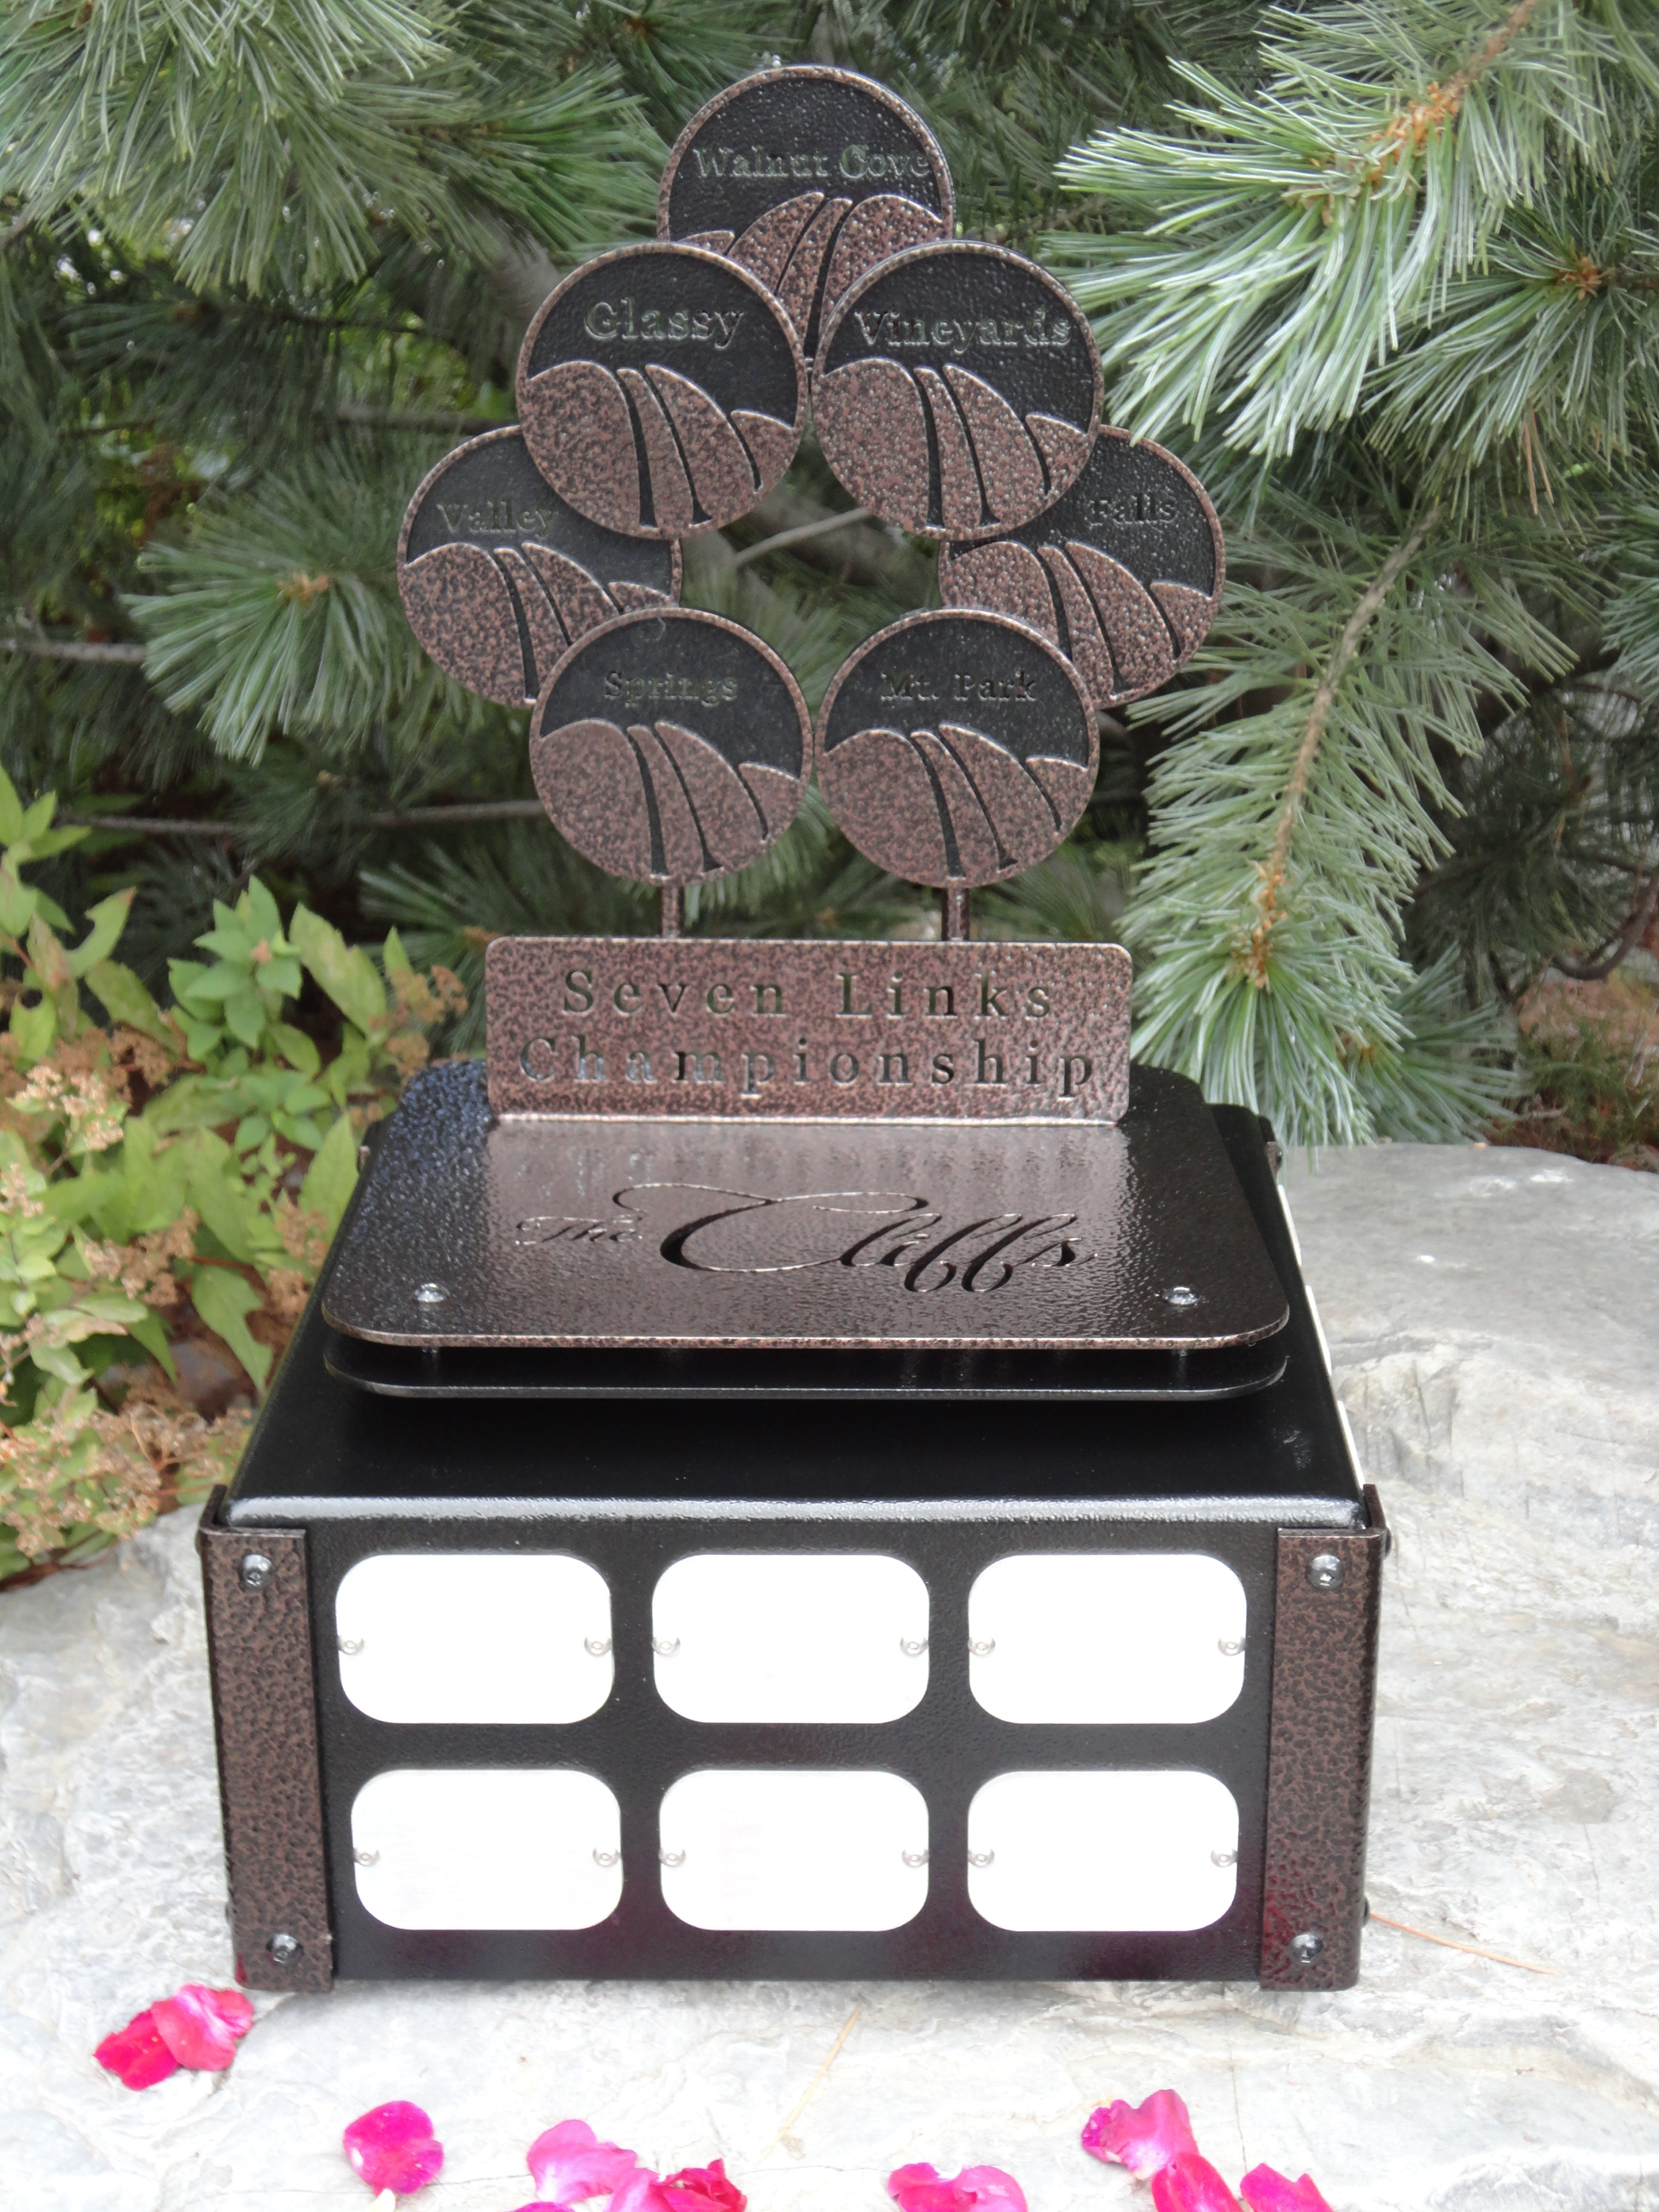 Cliffs -Club Championship Trophy